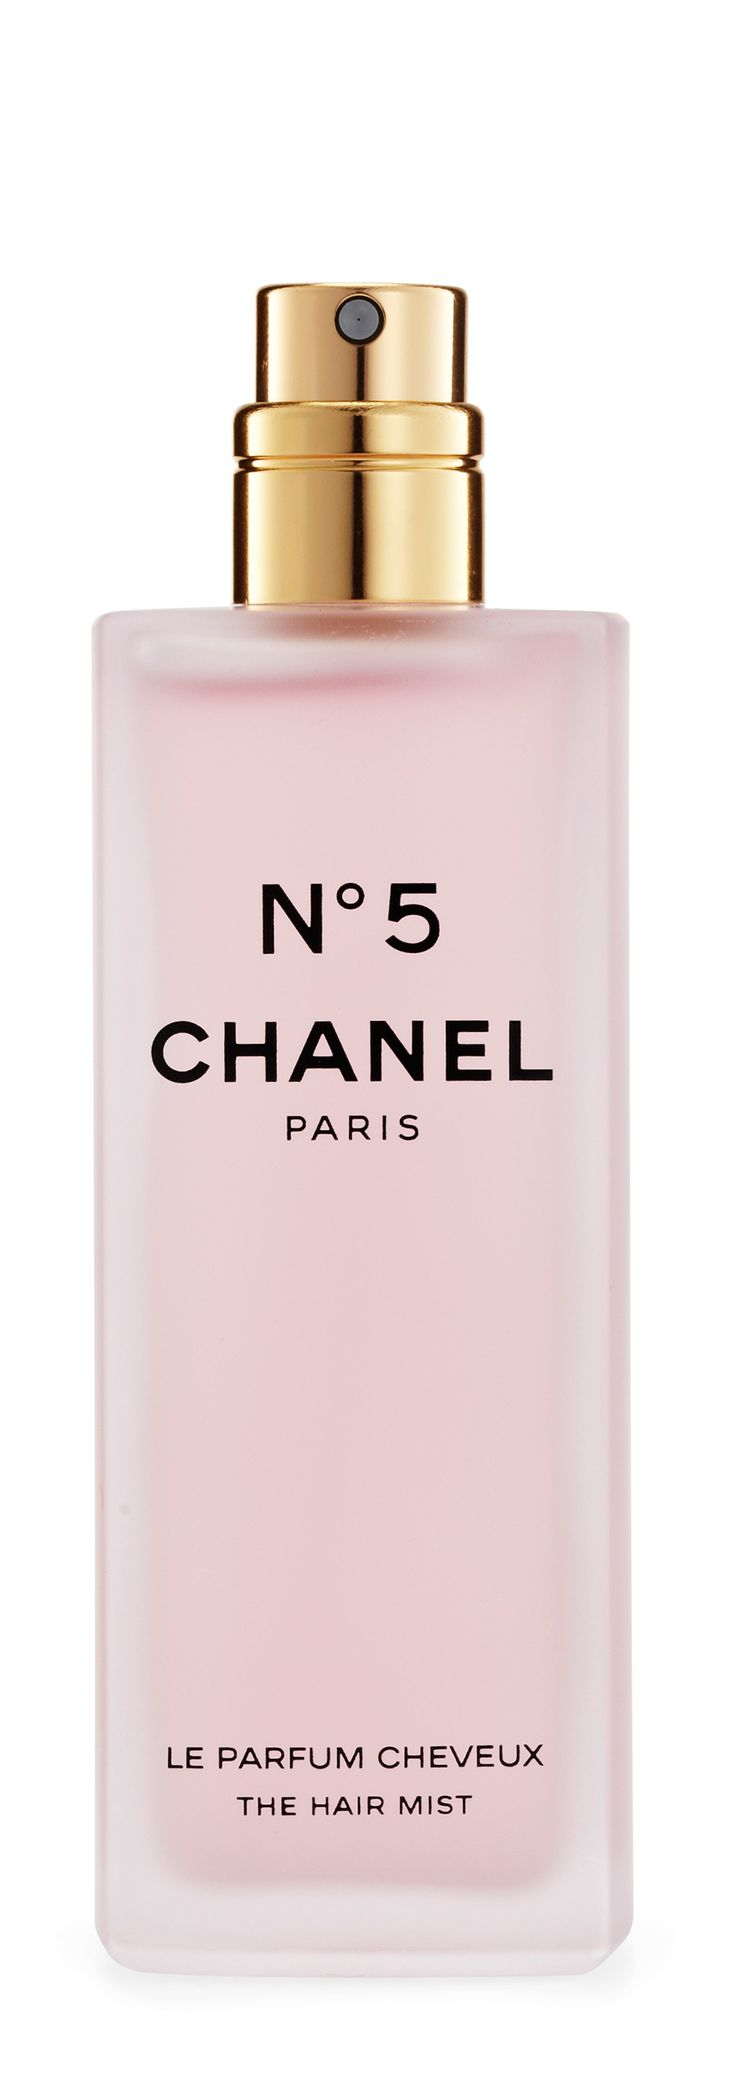 """If you, Marilyn Monroe–style, wear nothing to bed but Chanel No. 5, here's a new way to get (un)dressed: a hair mist that's lighter than the eau de parfum. The formula won't weigh down your sexy bed head, so spritz it in your waking hours, too."" — Val Monroe, O Beauty Director"